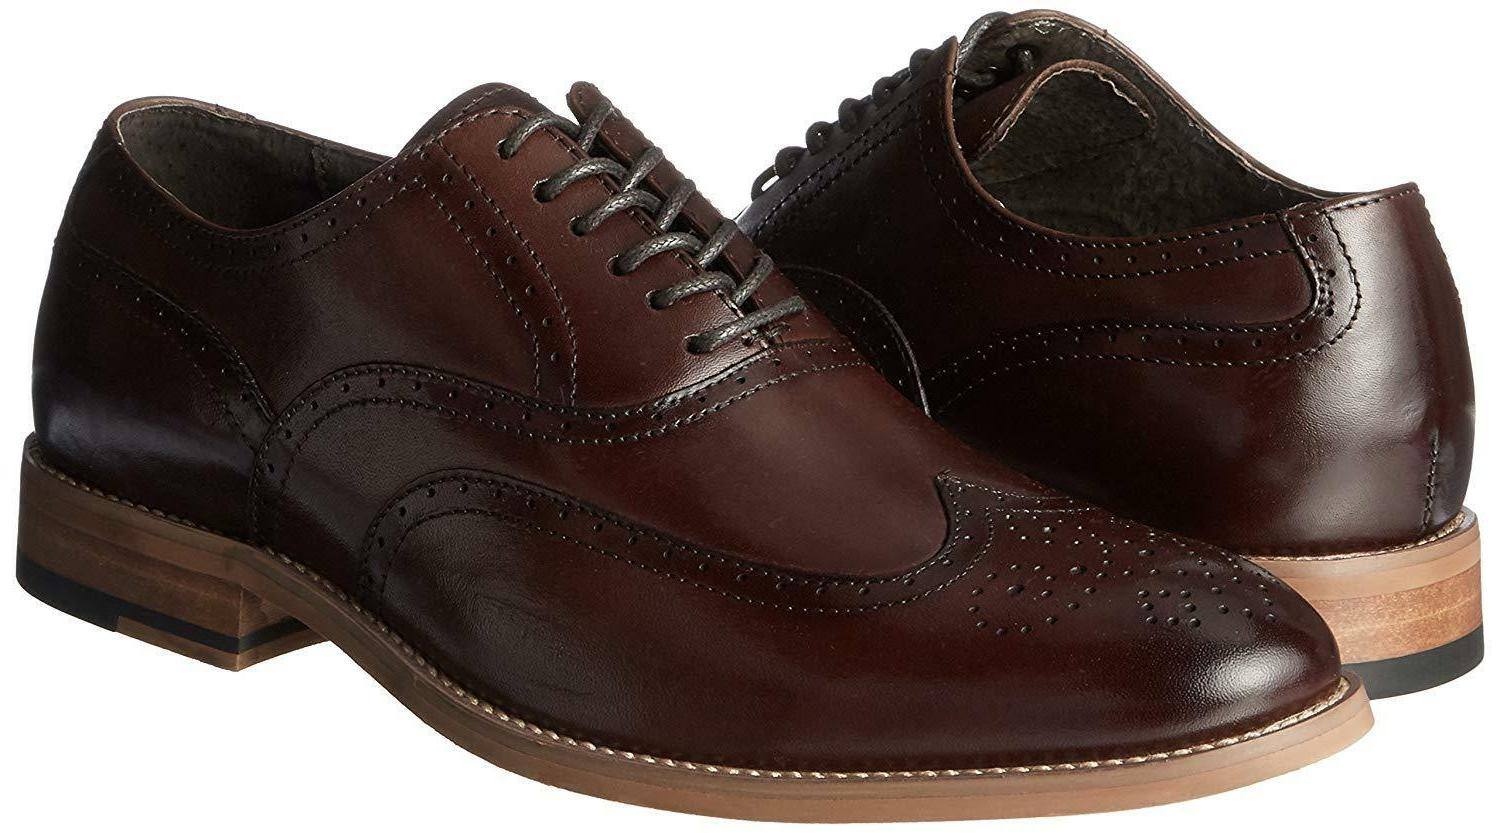 Stacy Adams Dunbar Wingtip